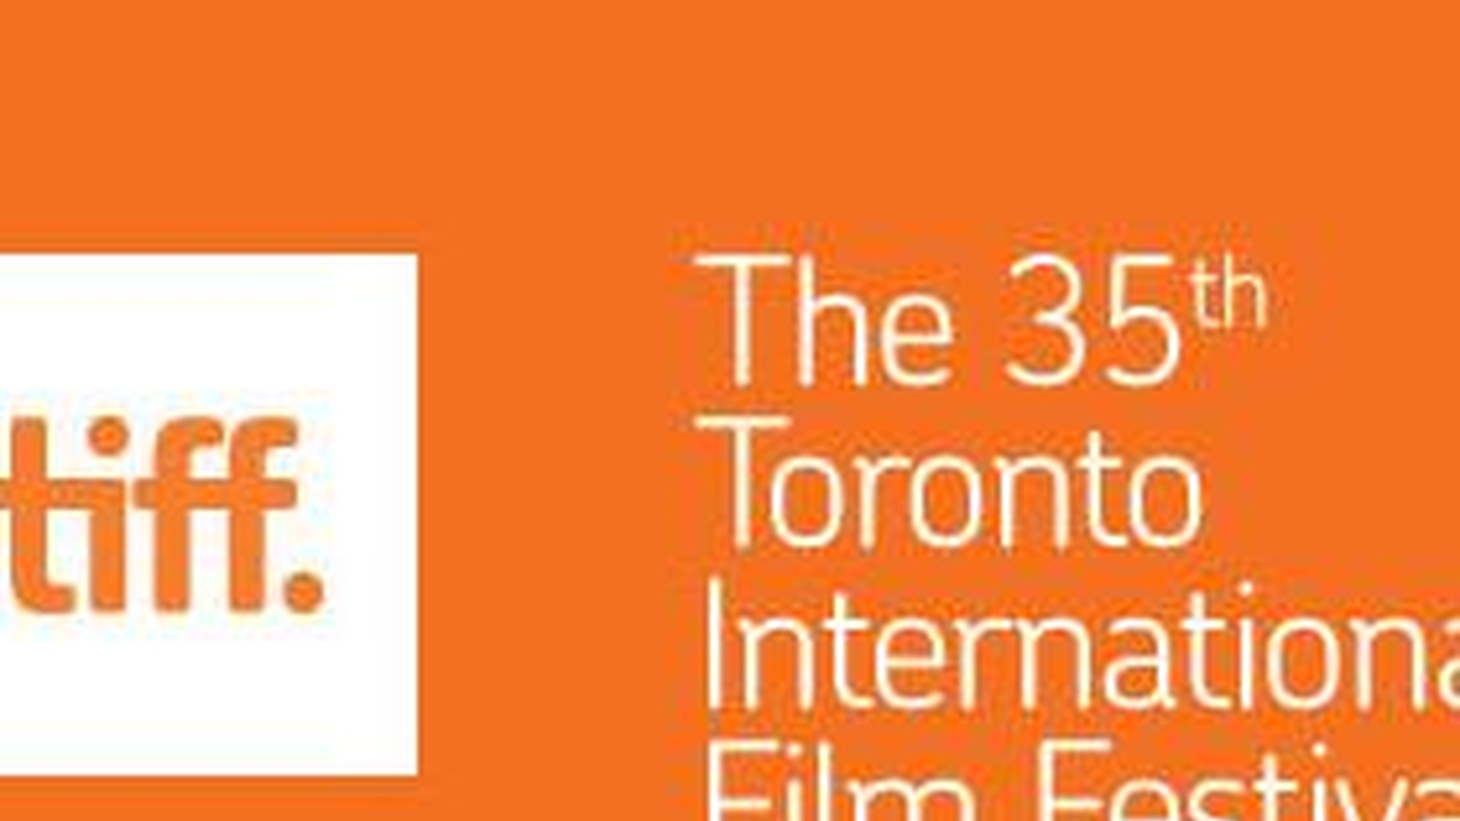 Premieres, parties and press junkets at the Toronto International Film Festival. Kim Masters goes insides a junket to interview Conviction director Tony Goldwyn about working a festival. Then its off to an industry party where Nigel Cole, director of Made in Dagenham, compares this year's TIFF to two years ago when he was promoting a film that was jeopardized by financial troubles. Plus, the original title for Cole's latest film and why it changed.